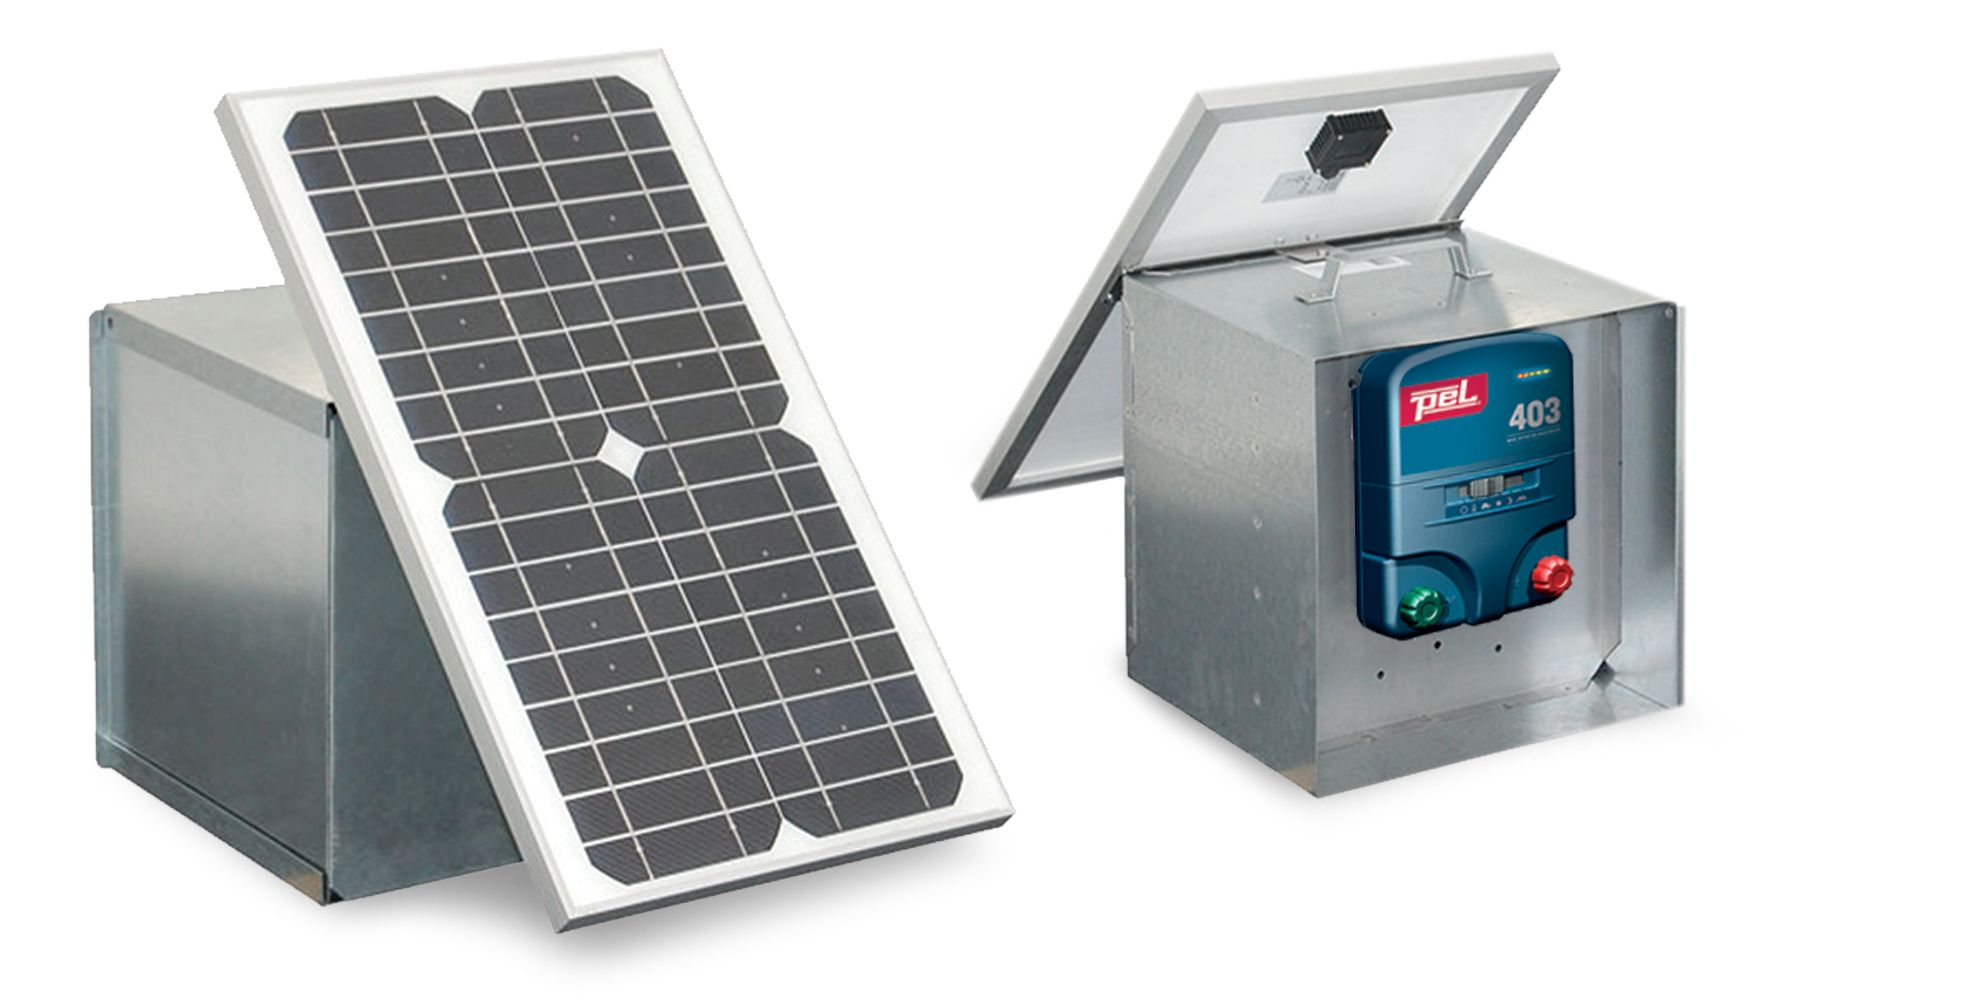 PEL 403 Solar Electric Fence Kit, from Ritchey